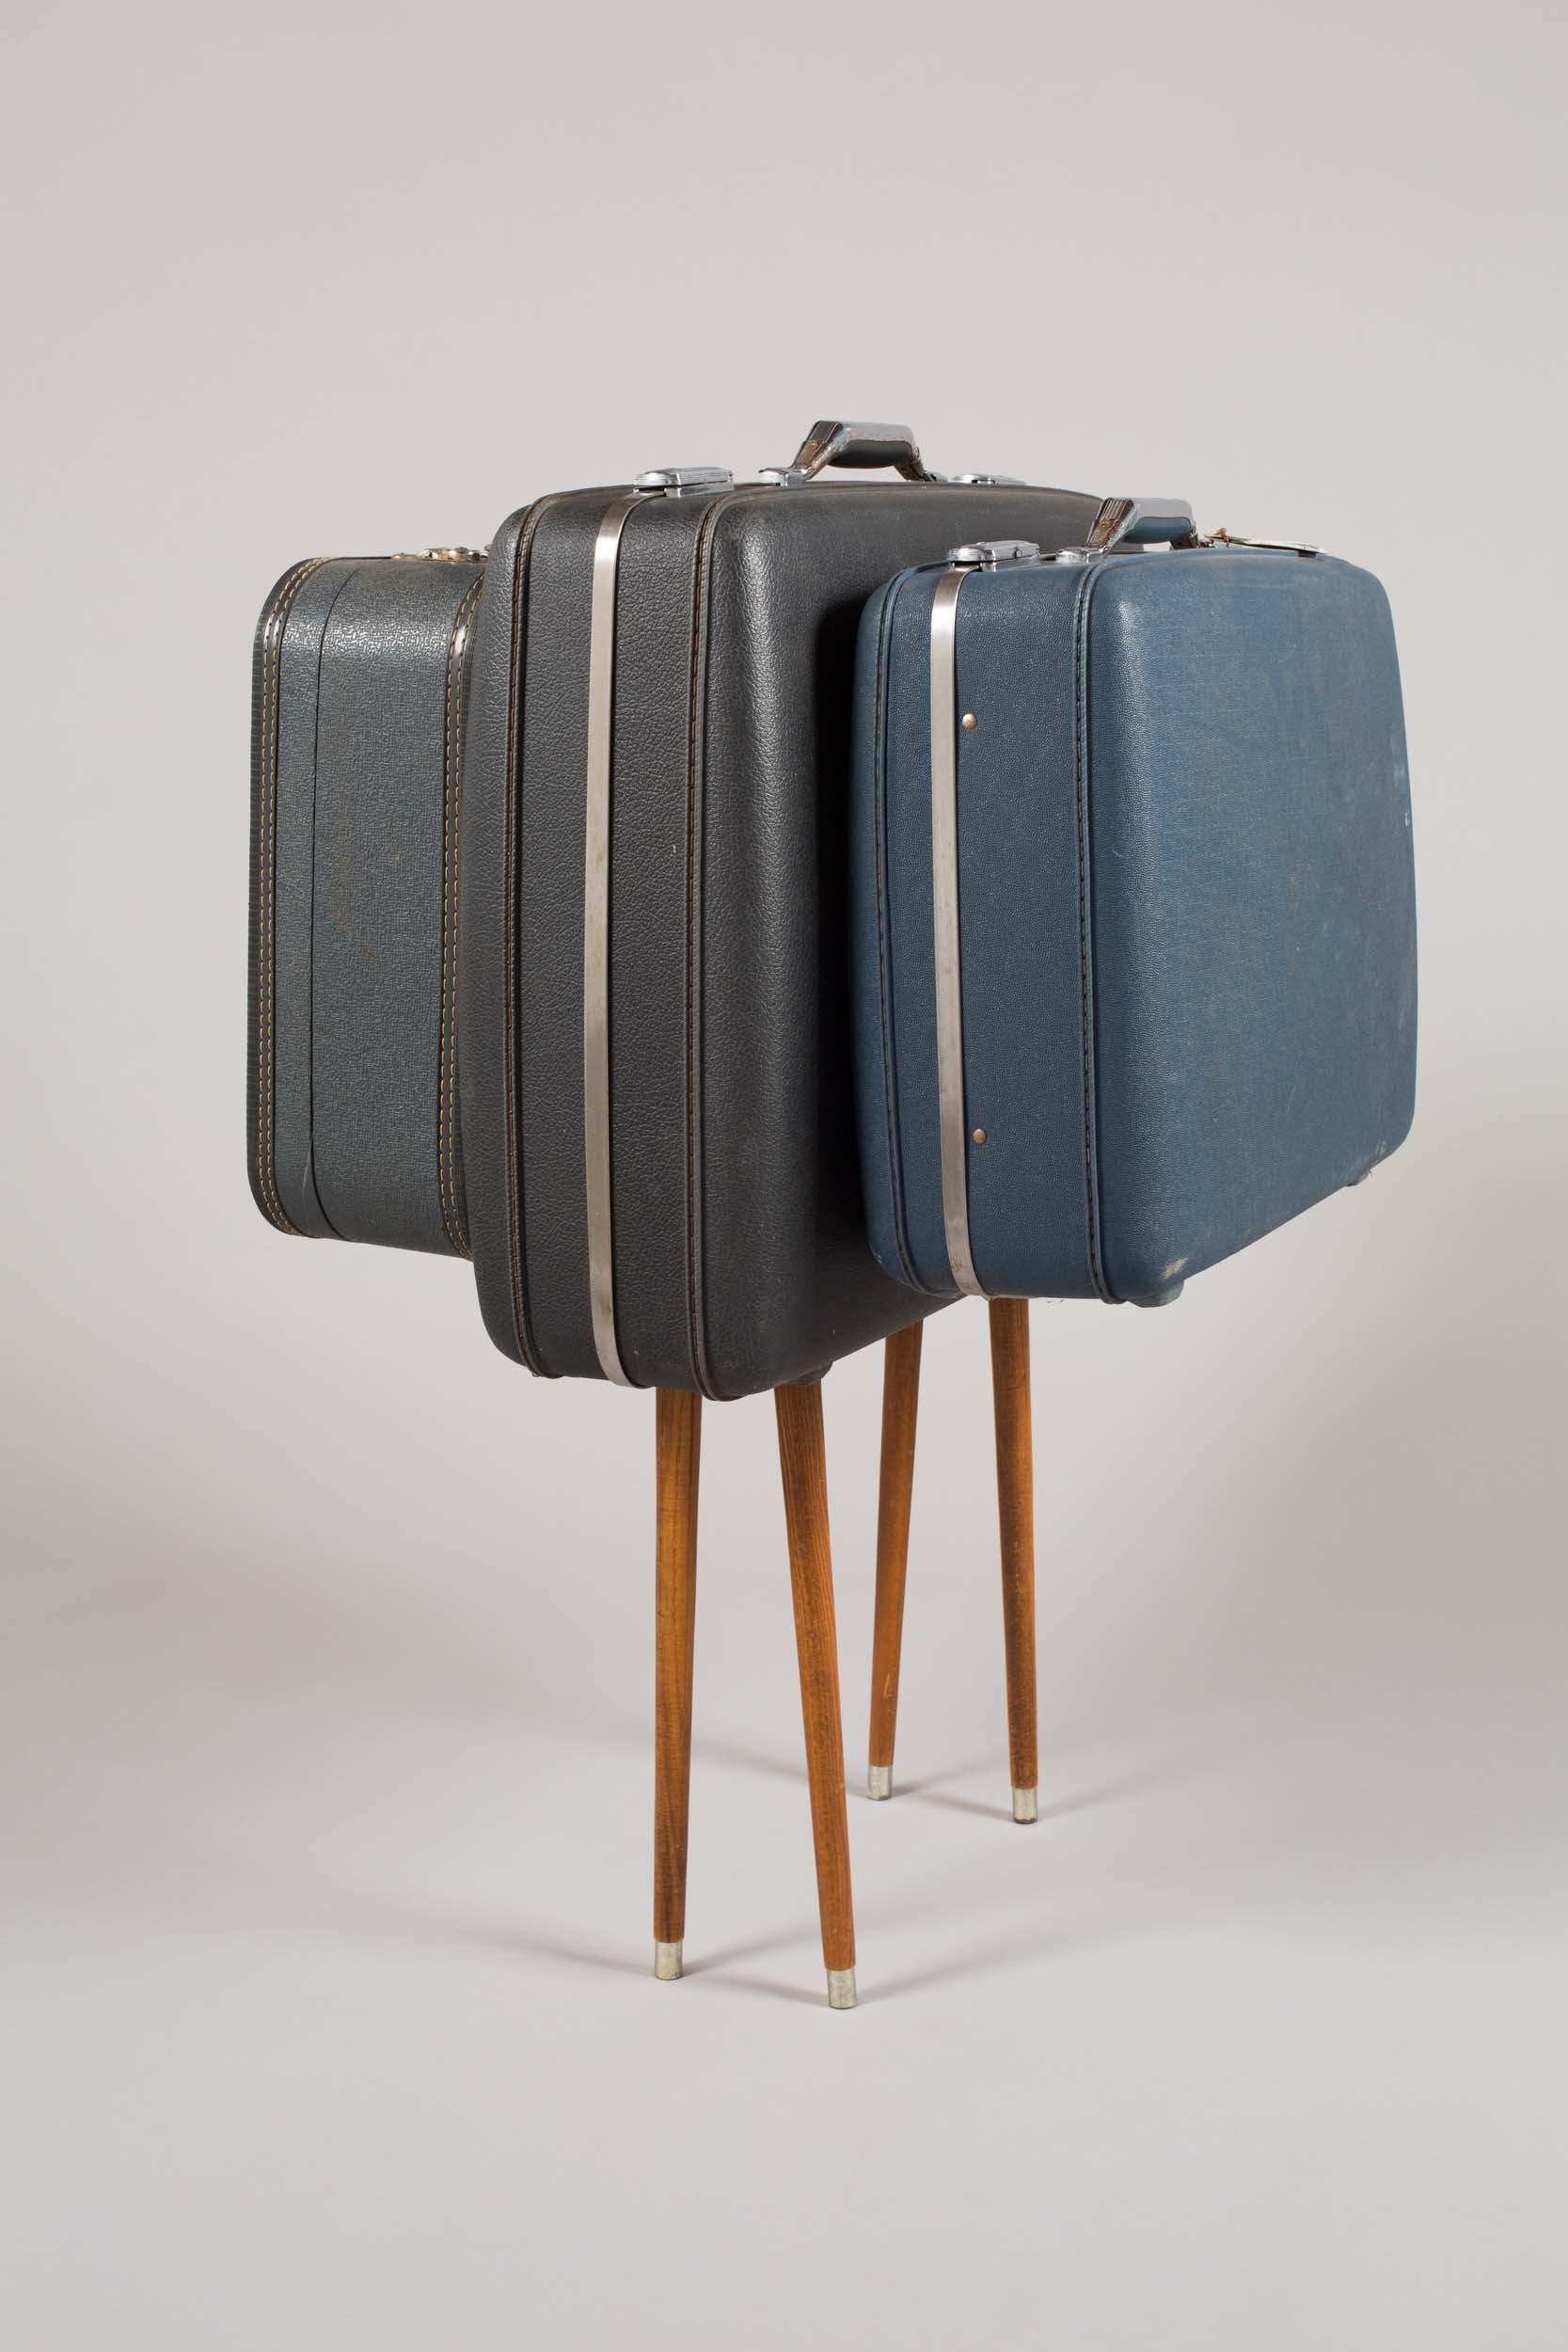 "Mark Baugh-Sasaki, Mule Suitcases and wooden legs 40"" x 36"" x 30"" 2019"